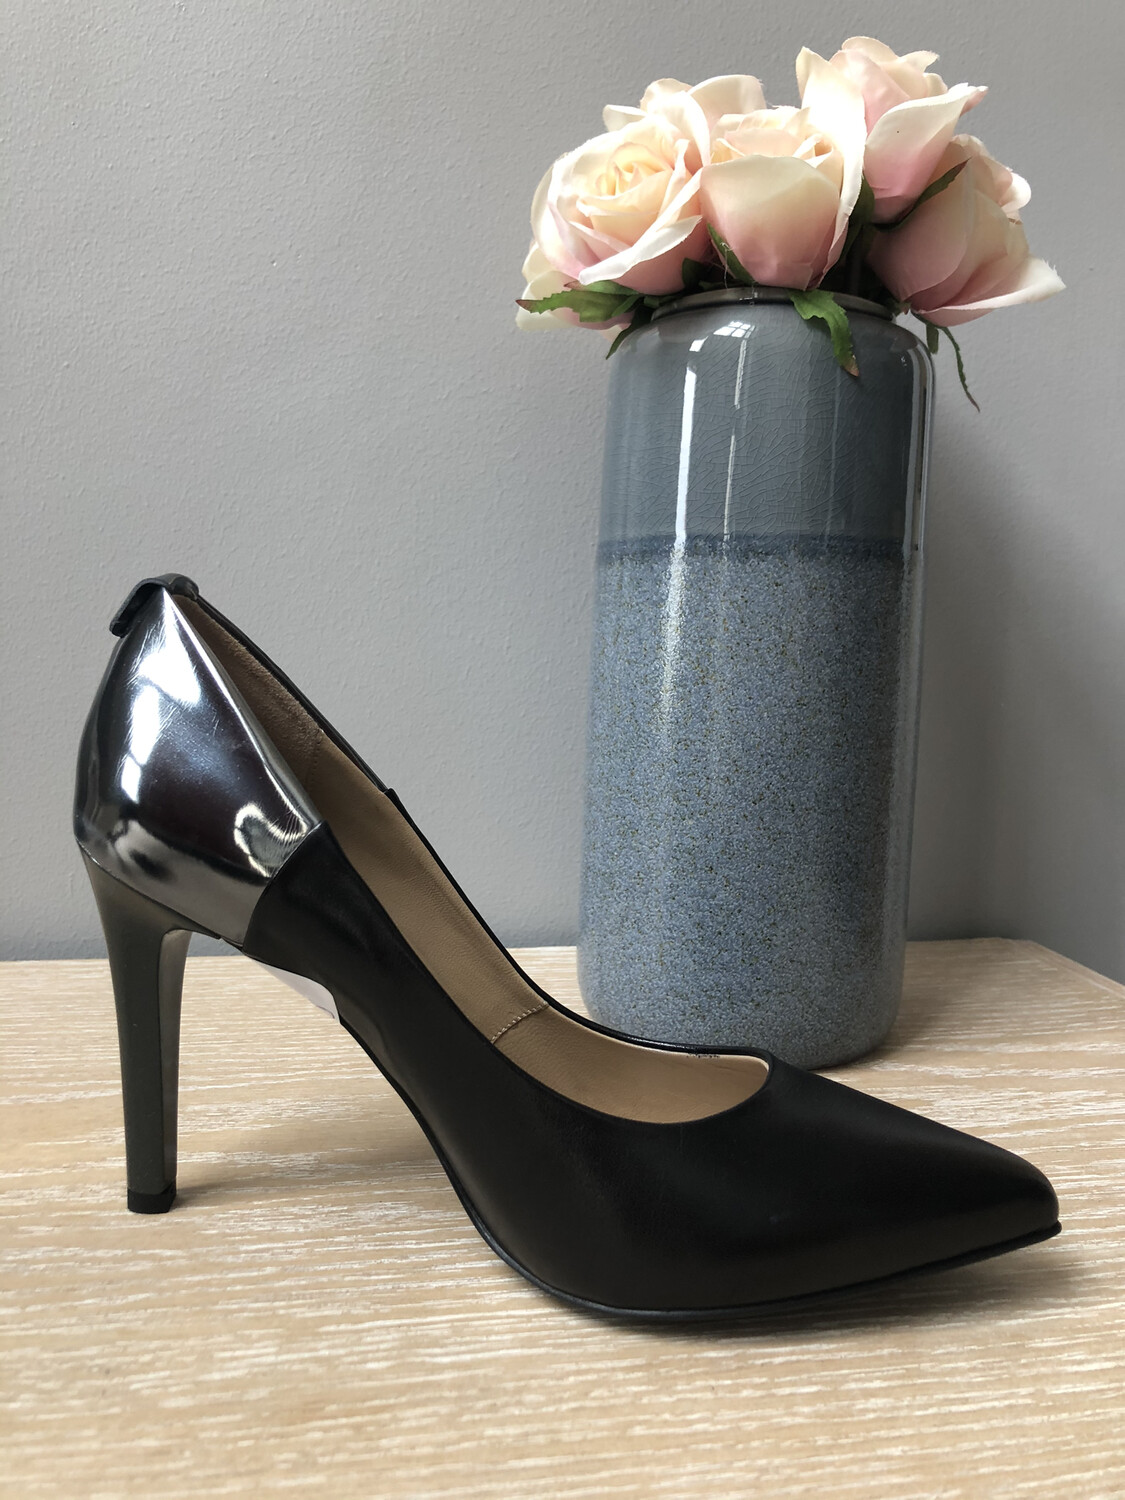 Black Leather Court Shoe With Chrome Heel